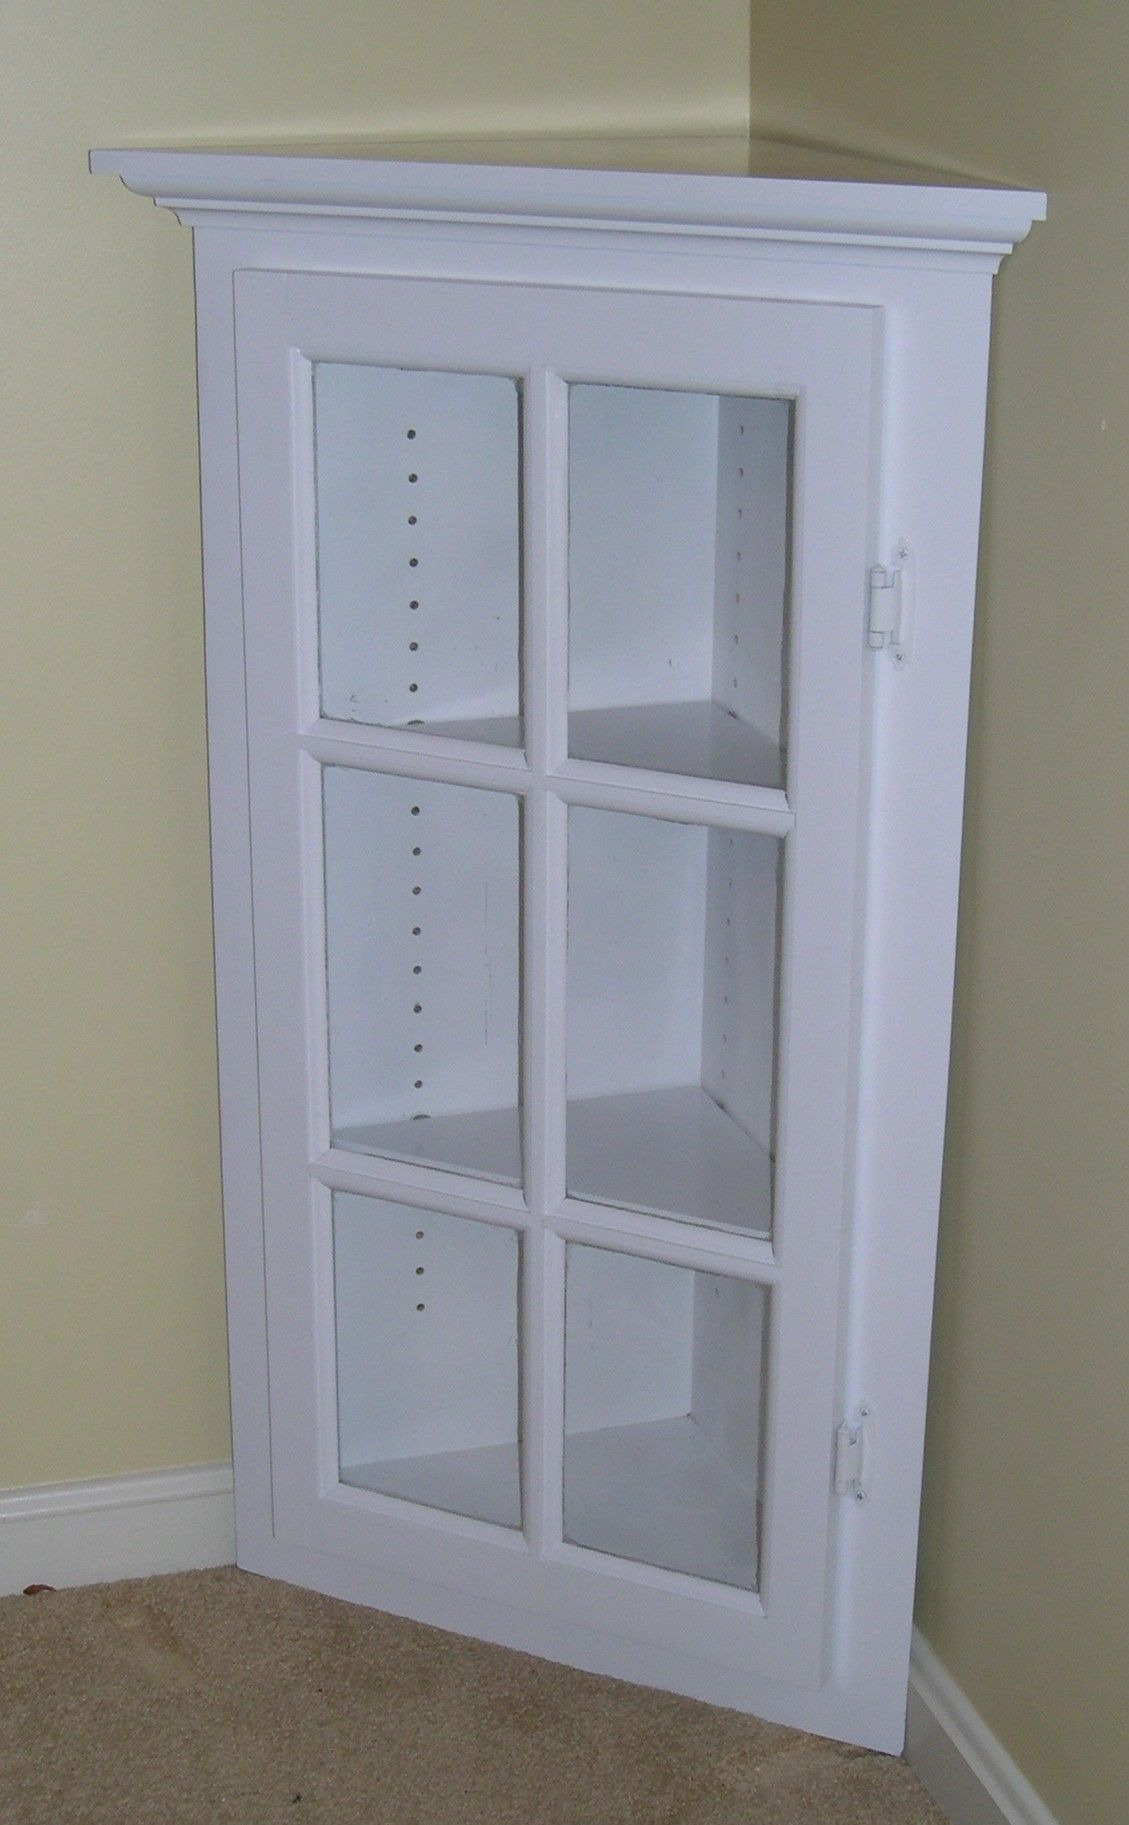 Cabinet with Glass Doors Beautiful White Corner Cabinet with Glass Doors